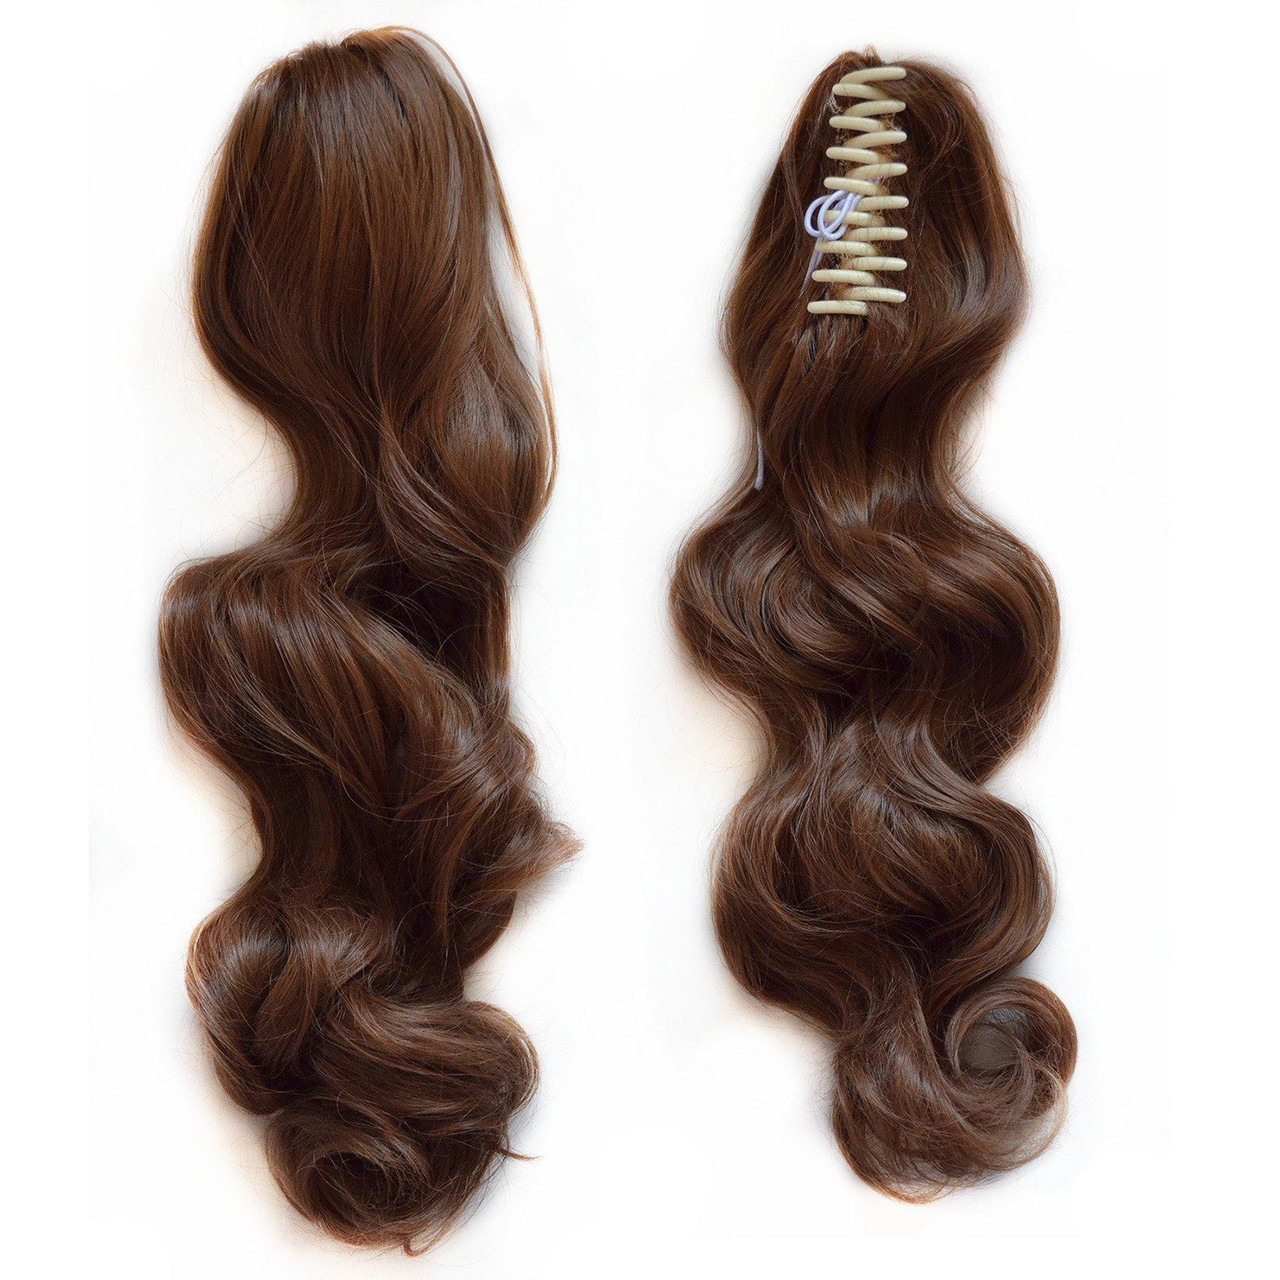 Wavy Real Human Hair Ponytails Hairpiece Claw Clip Ponytail Hair